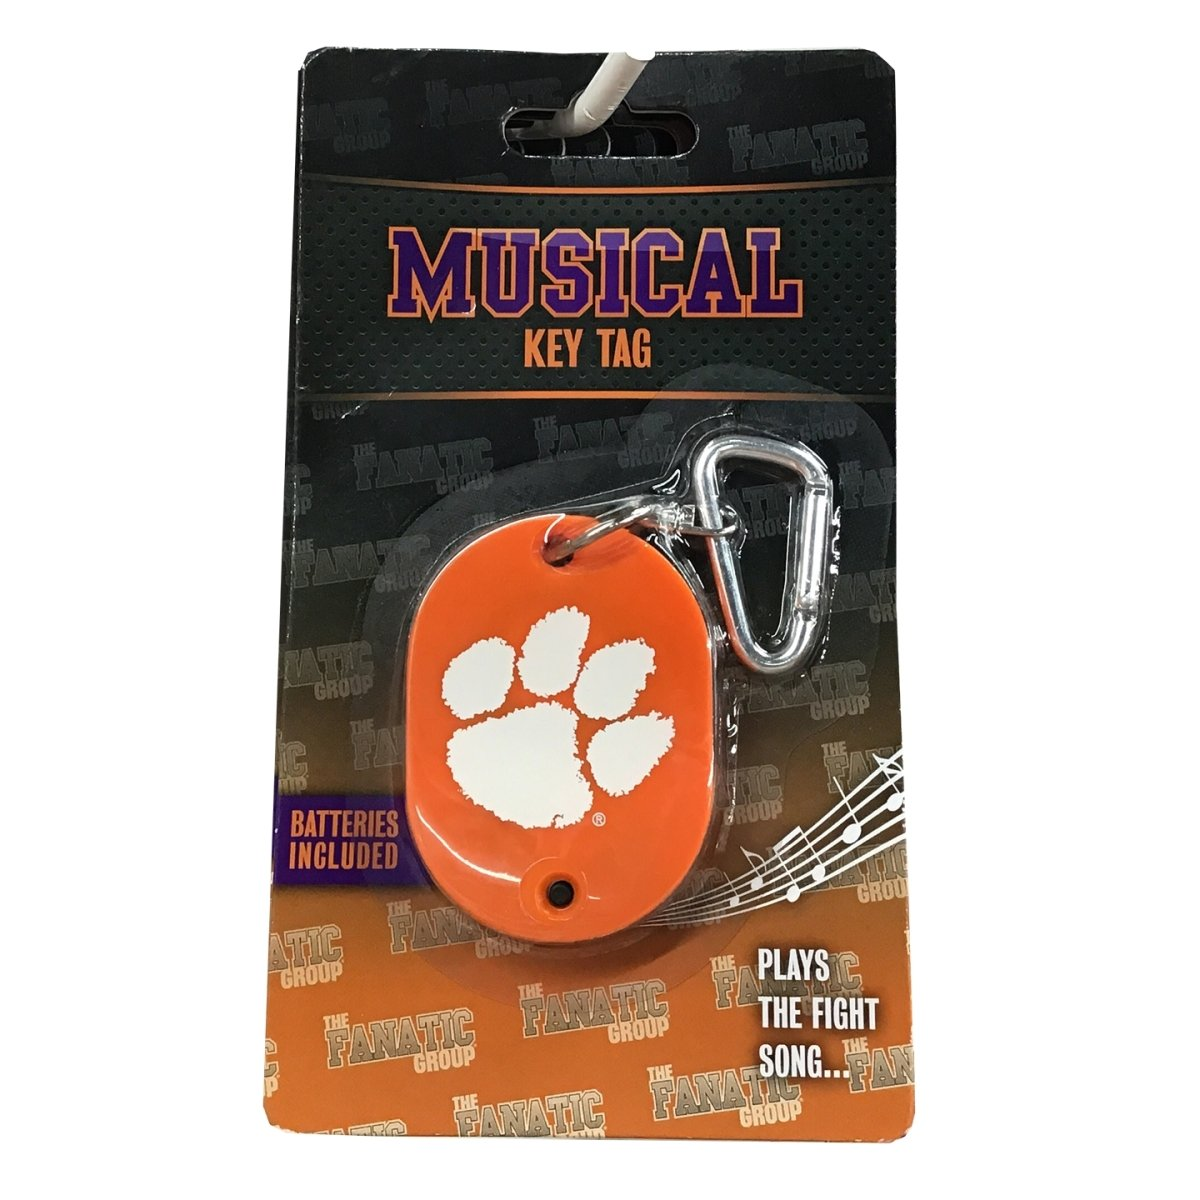 Musical Tiger Rag Key Tag Orange With White Paw - Mr. Knickerbocker